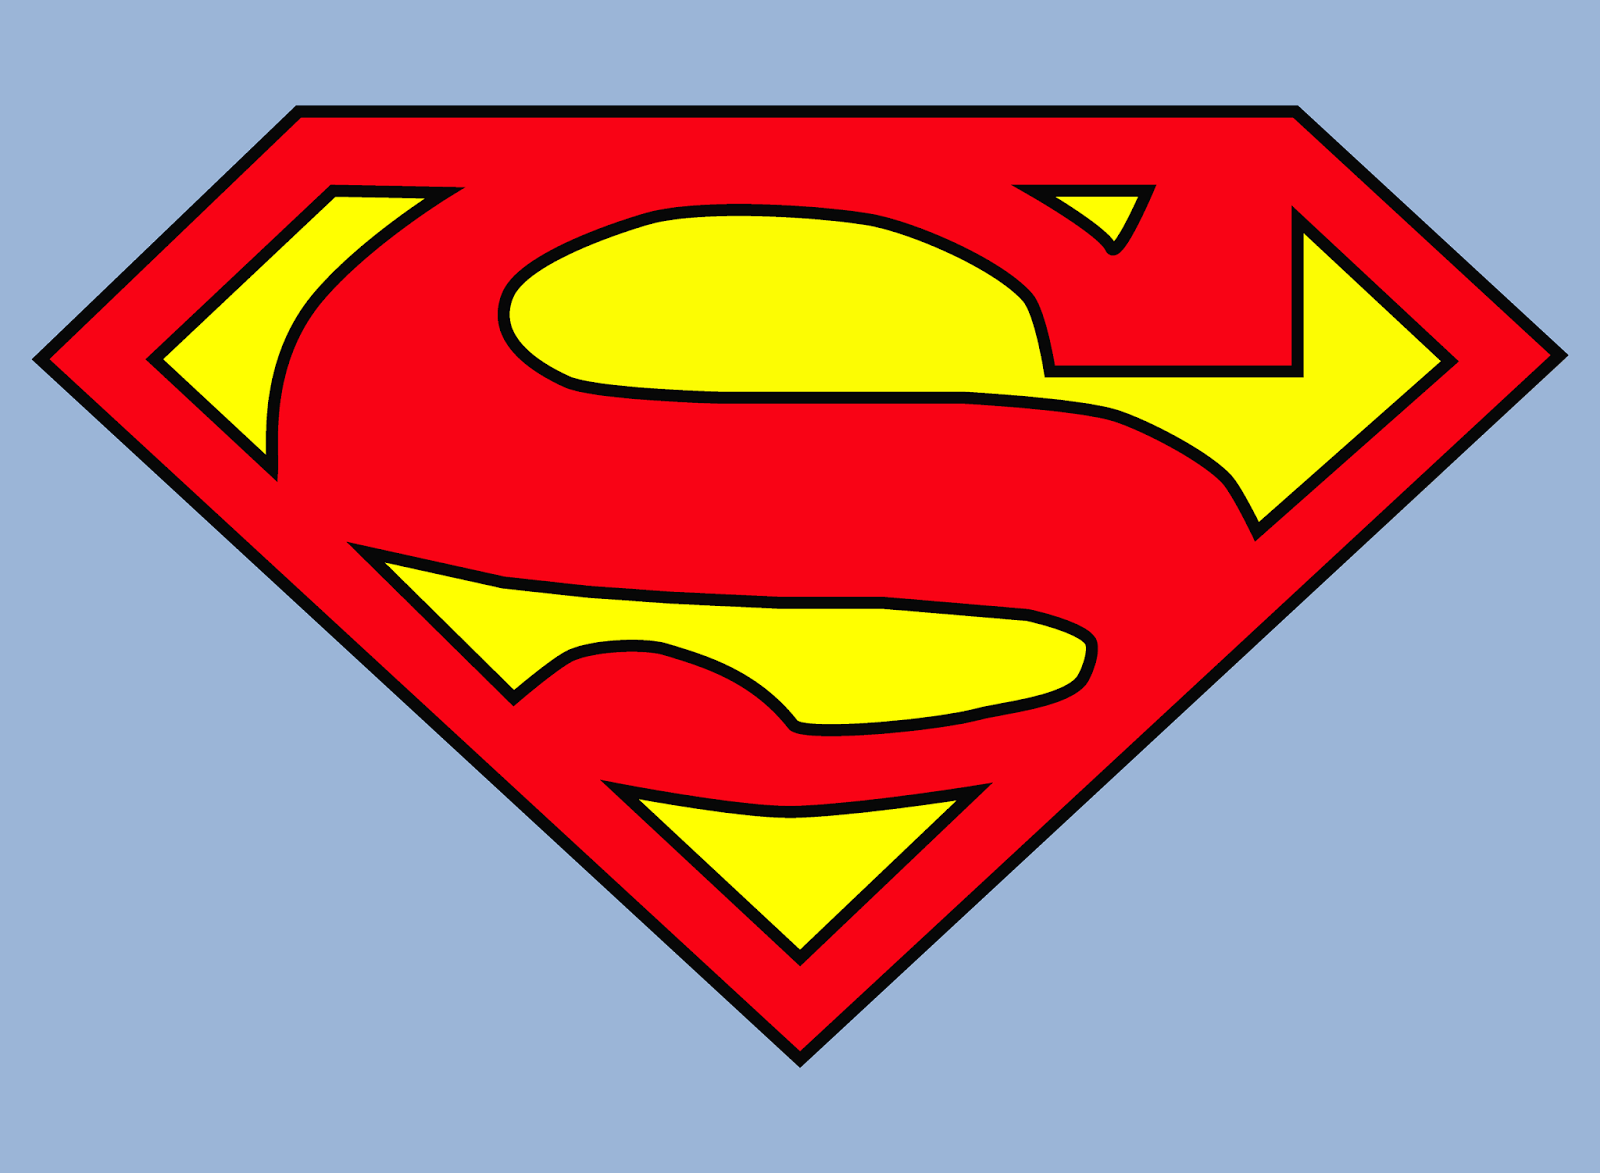 Logo de superman png. High quality transparentpng image